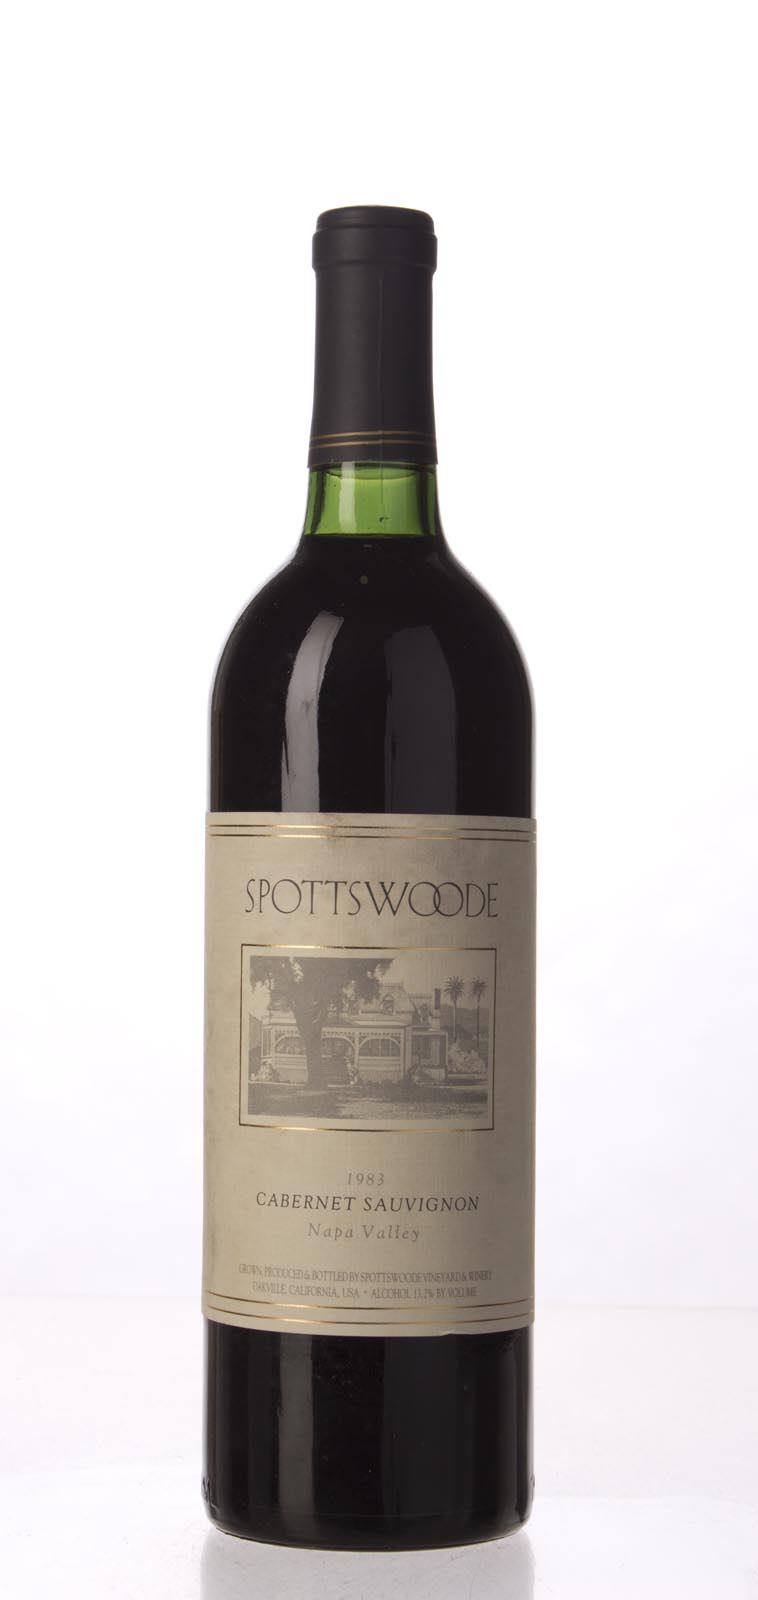 Spottswoode Cabernet Sauvignon Napa Valley 1983, 750mL () from The BPW - Merchants of rare and fine wines.